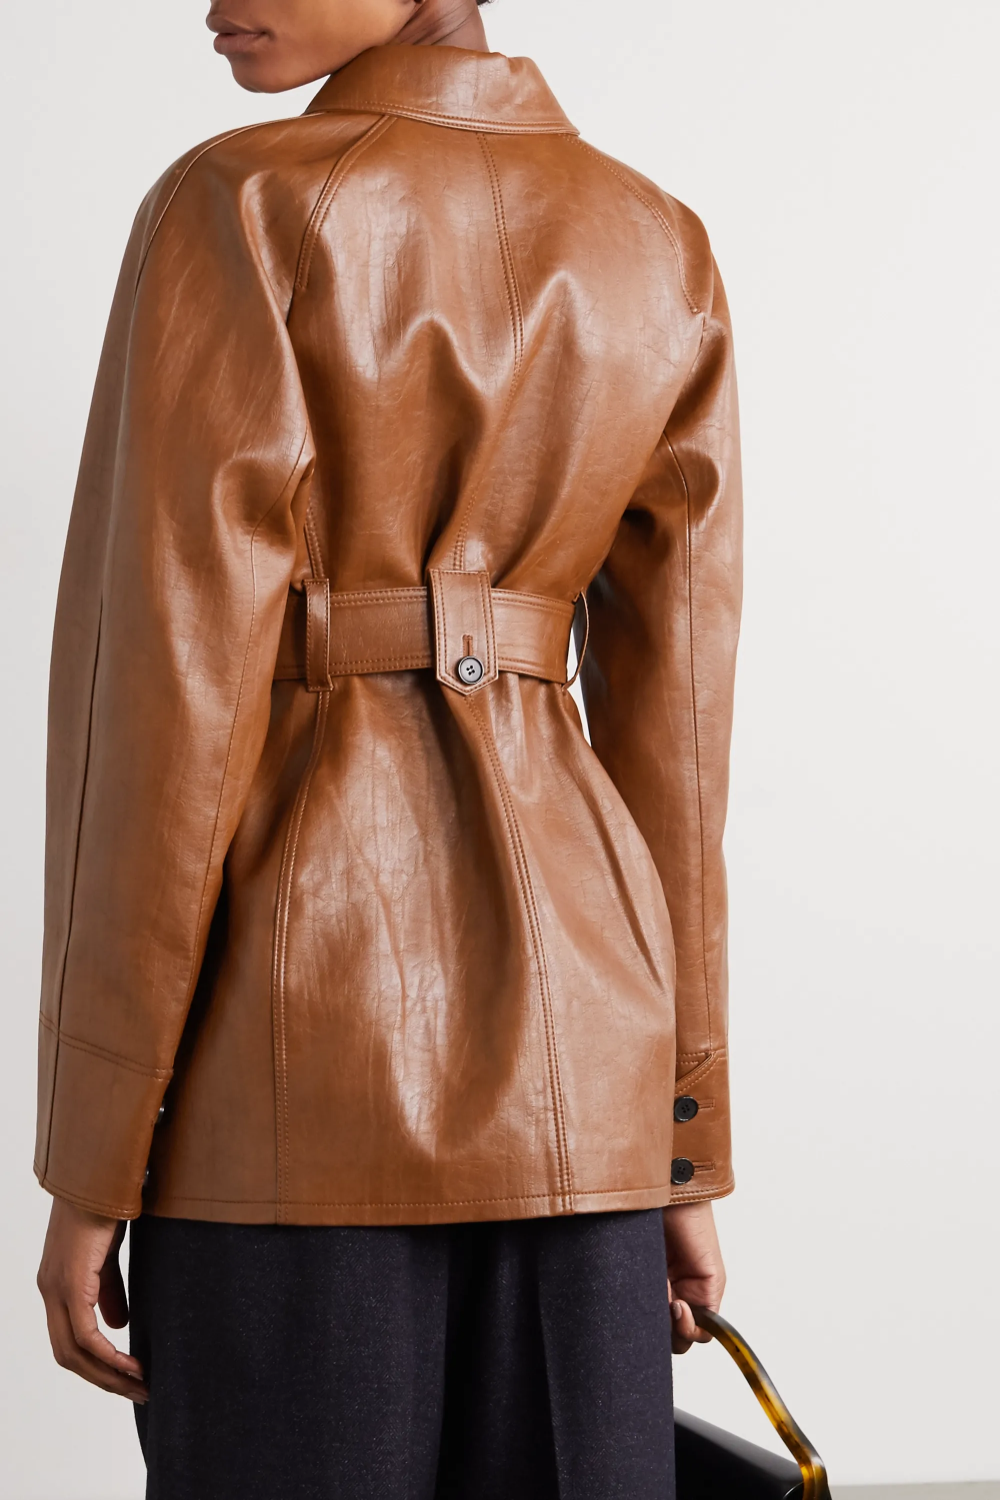 Brown Belted Faux Leather Jacket Lvir Leather Jacket Faux Leather Jackets Jackets [ 1500 x 1000 Pixel ]